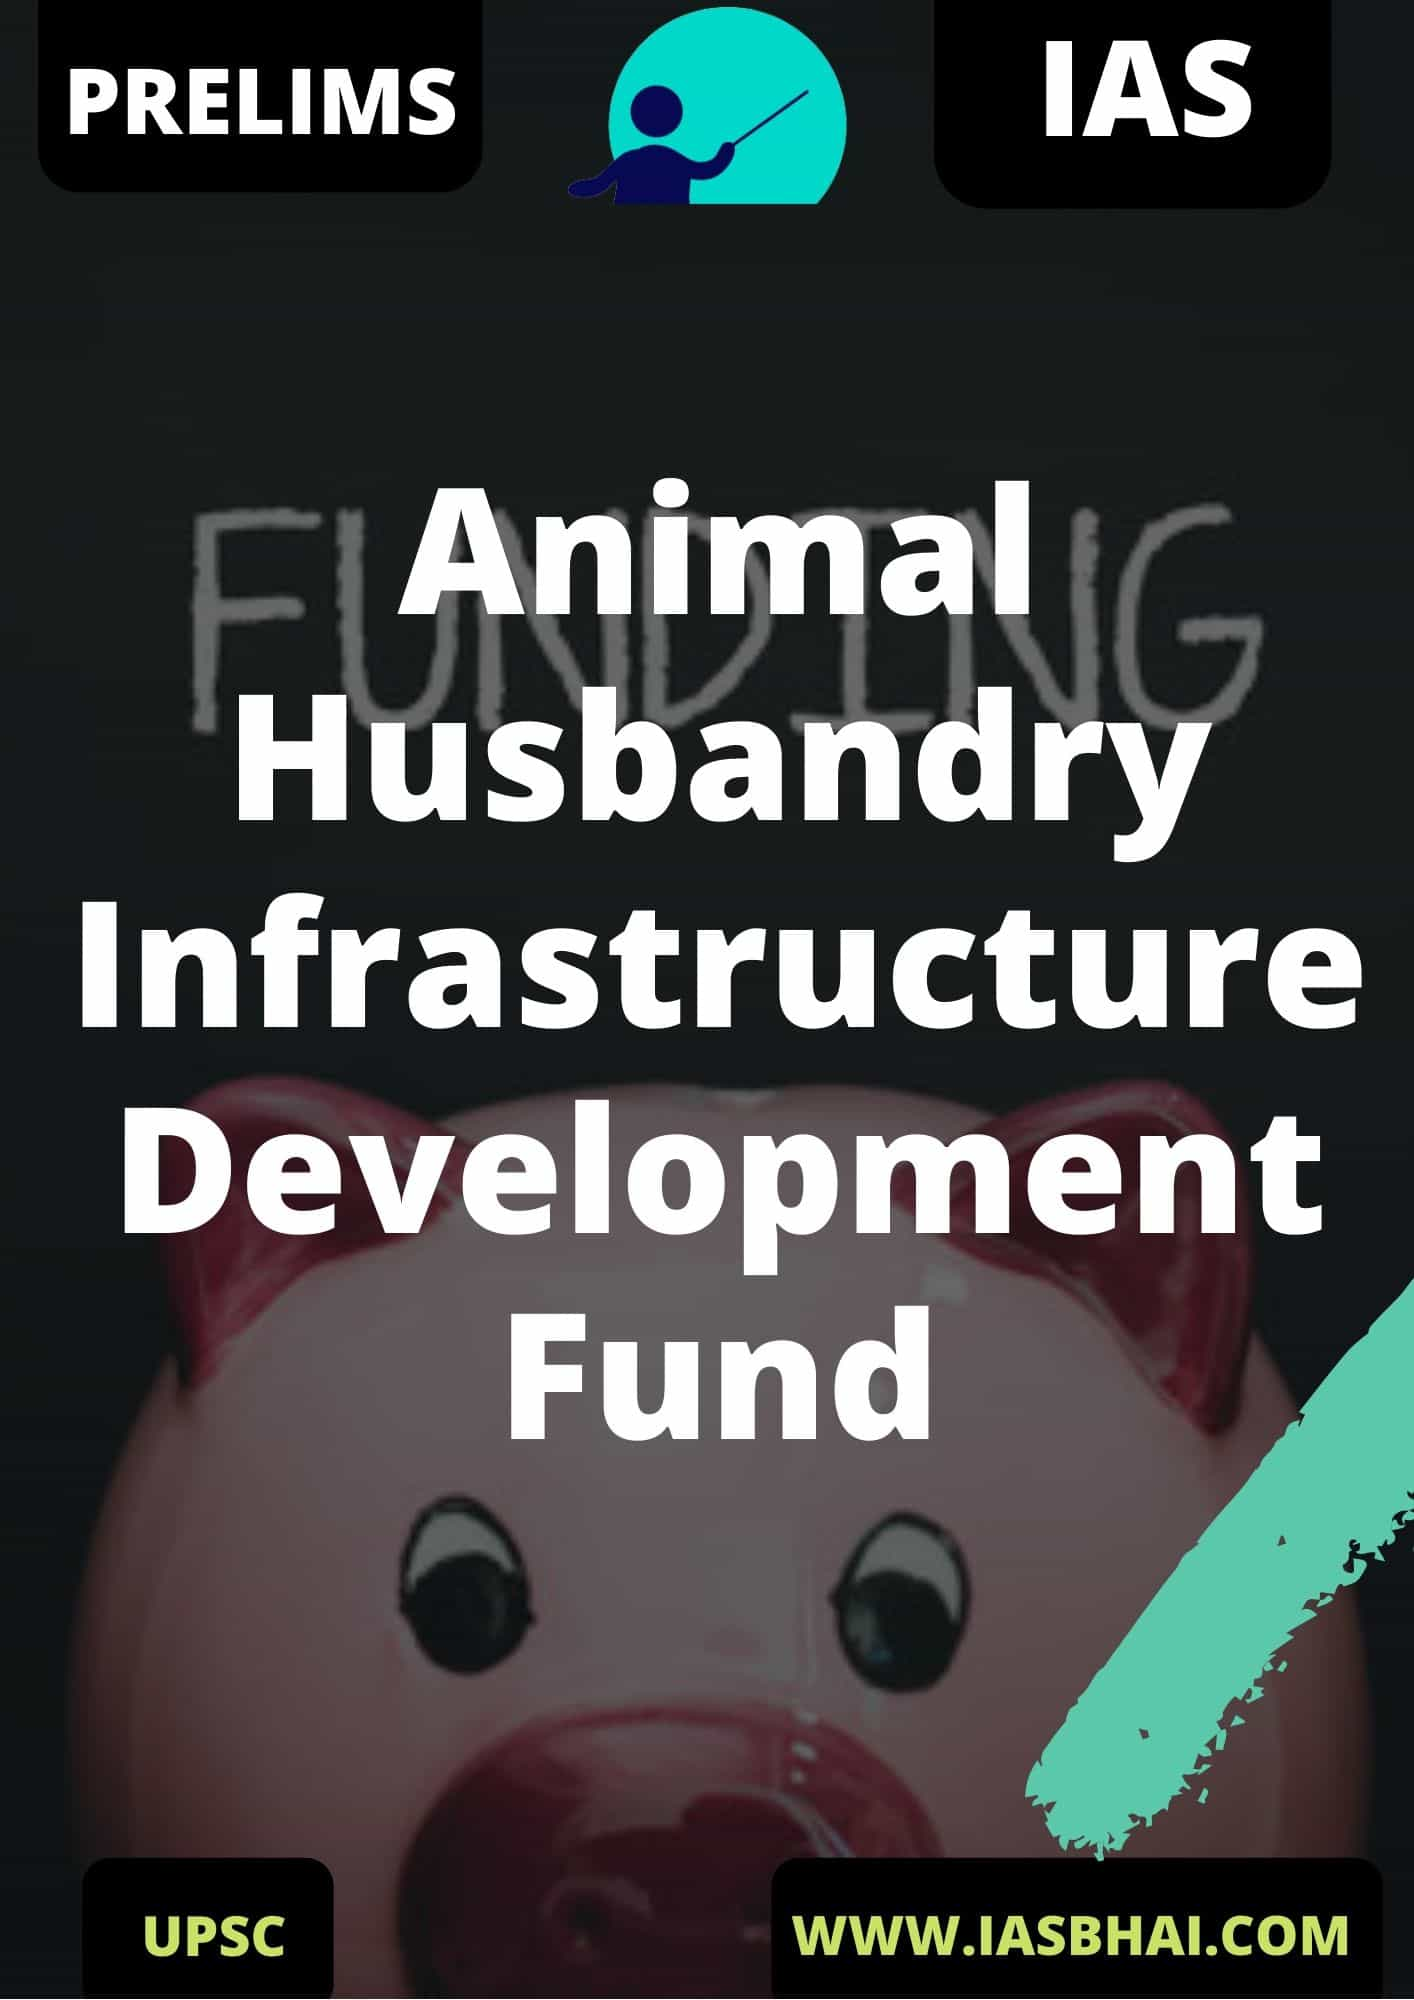 Animal Husbandry Infrastructure Development Fund UPSC IAS